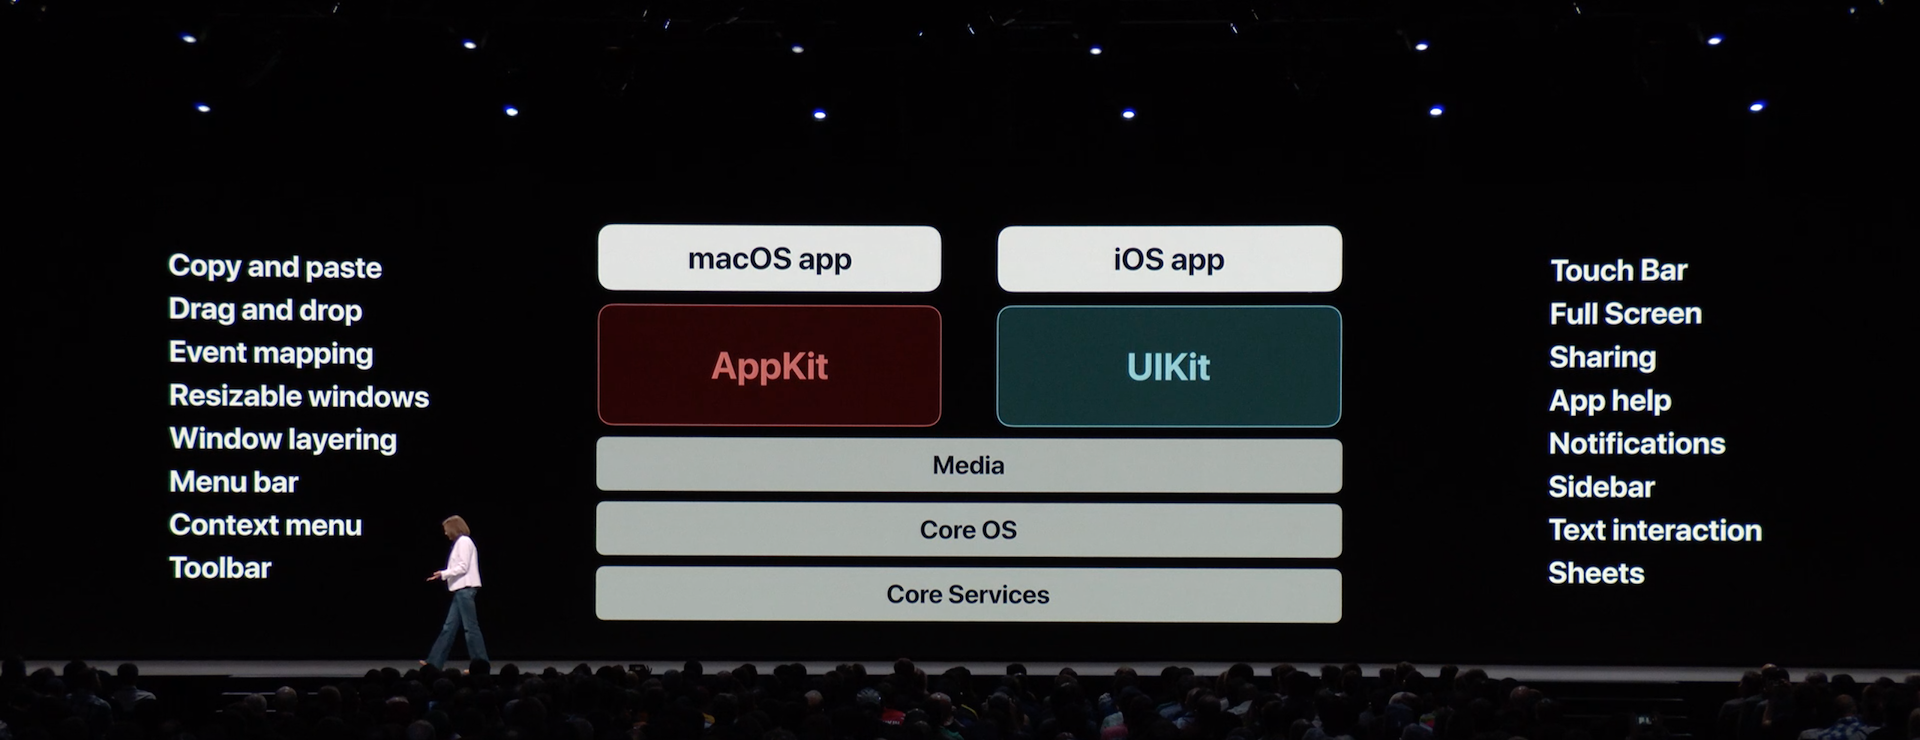 Apple is mapping certain UIKit interactions to AppKit to make iOS apps feel more like regular Mac apps.